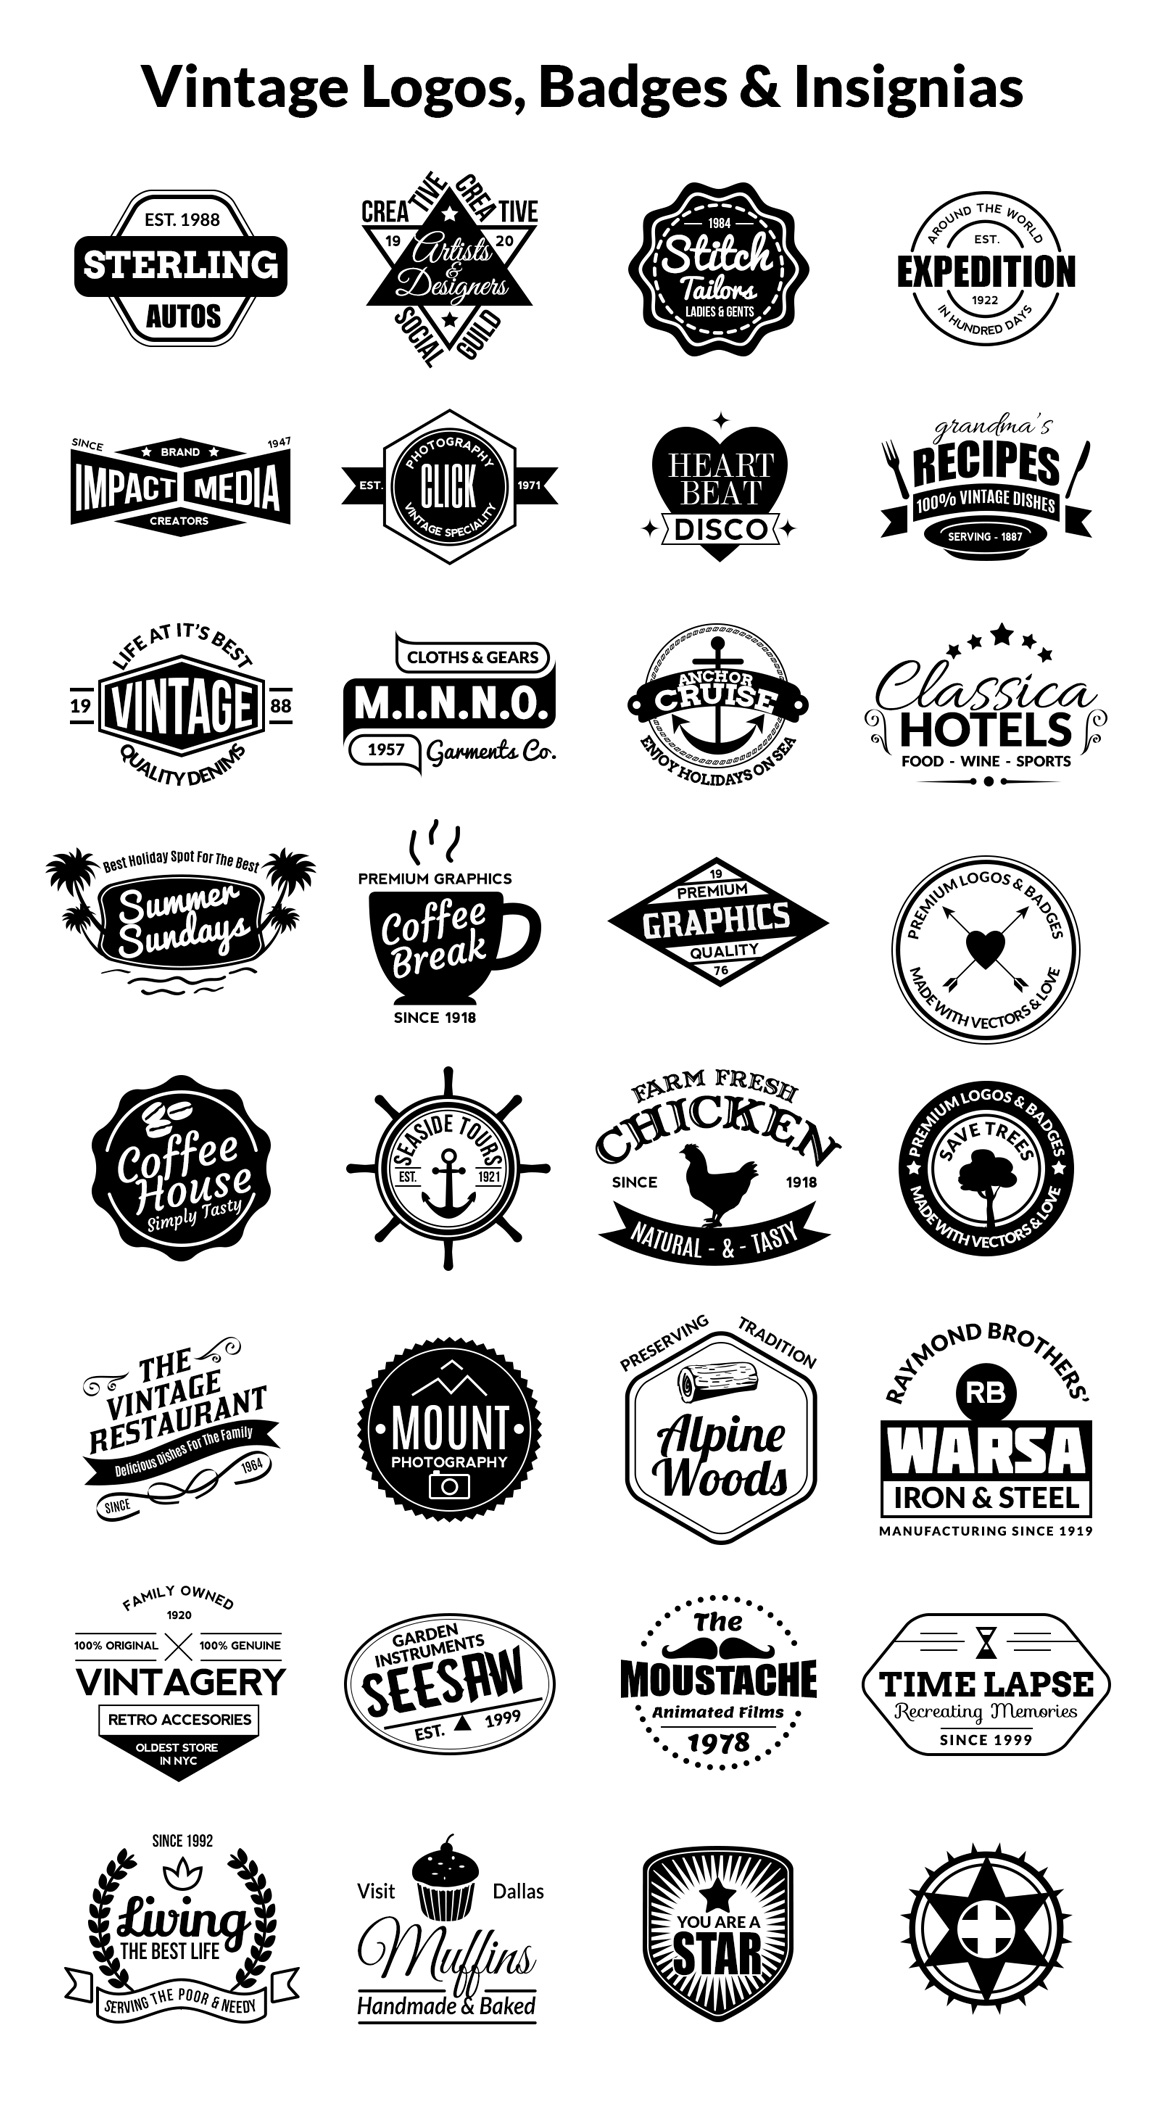 bonus-logos-badges-insignias